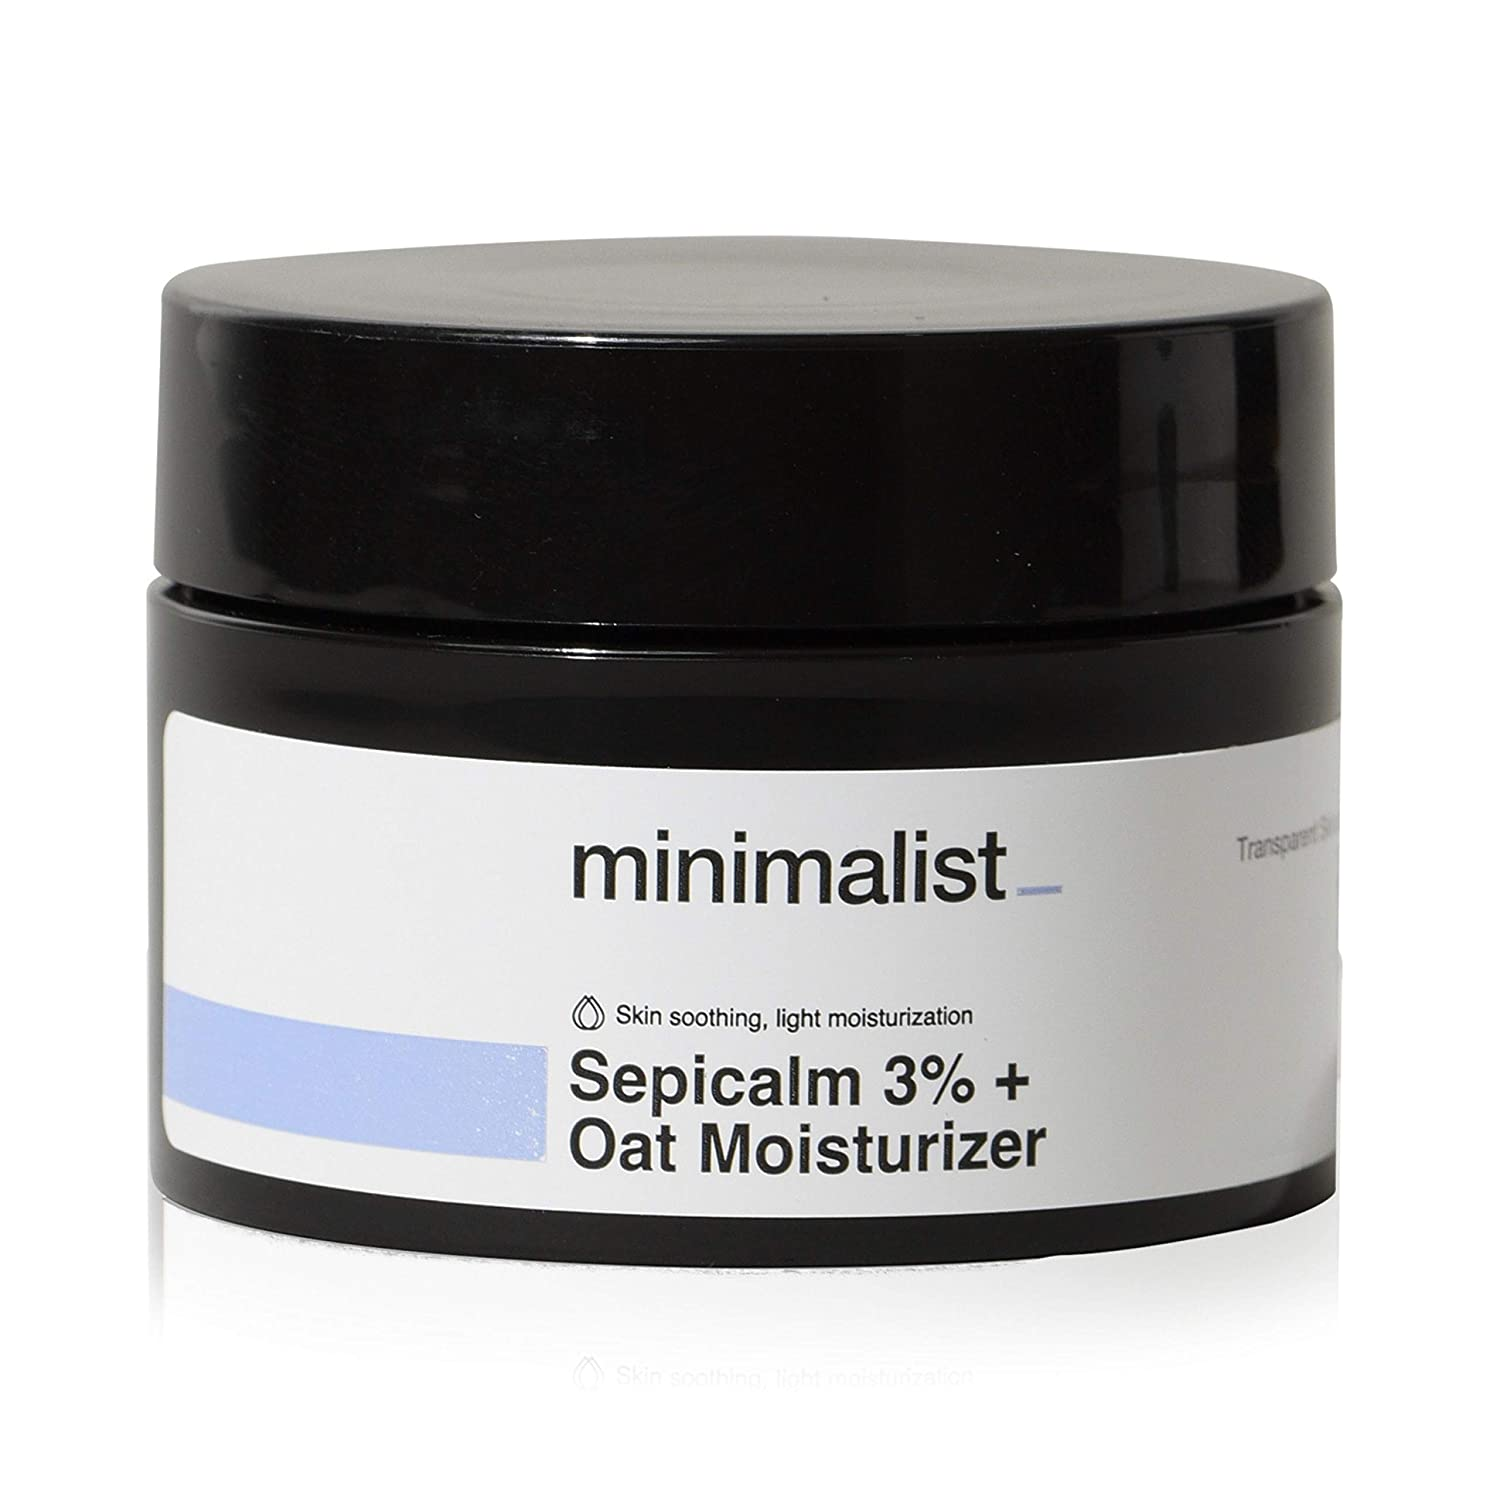 Girlistan - What is oily skin? Is oily skin good or bad?